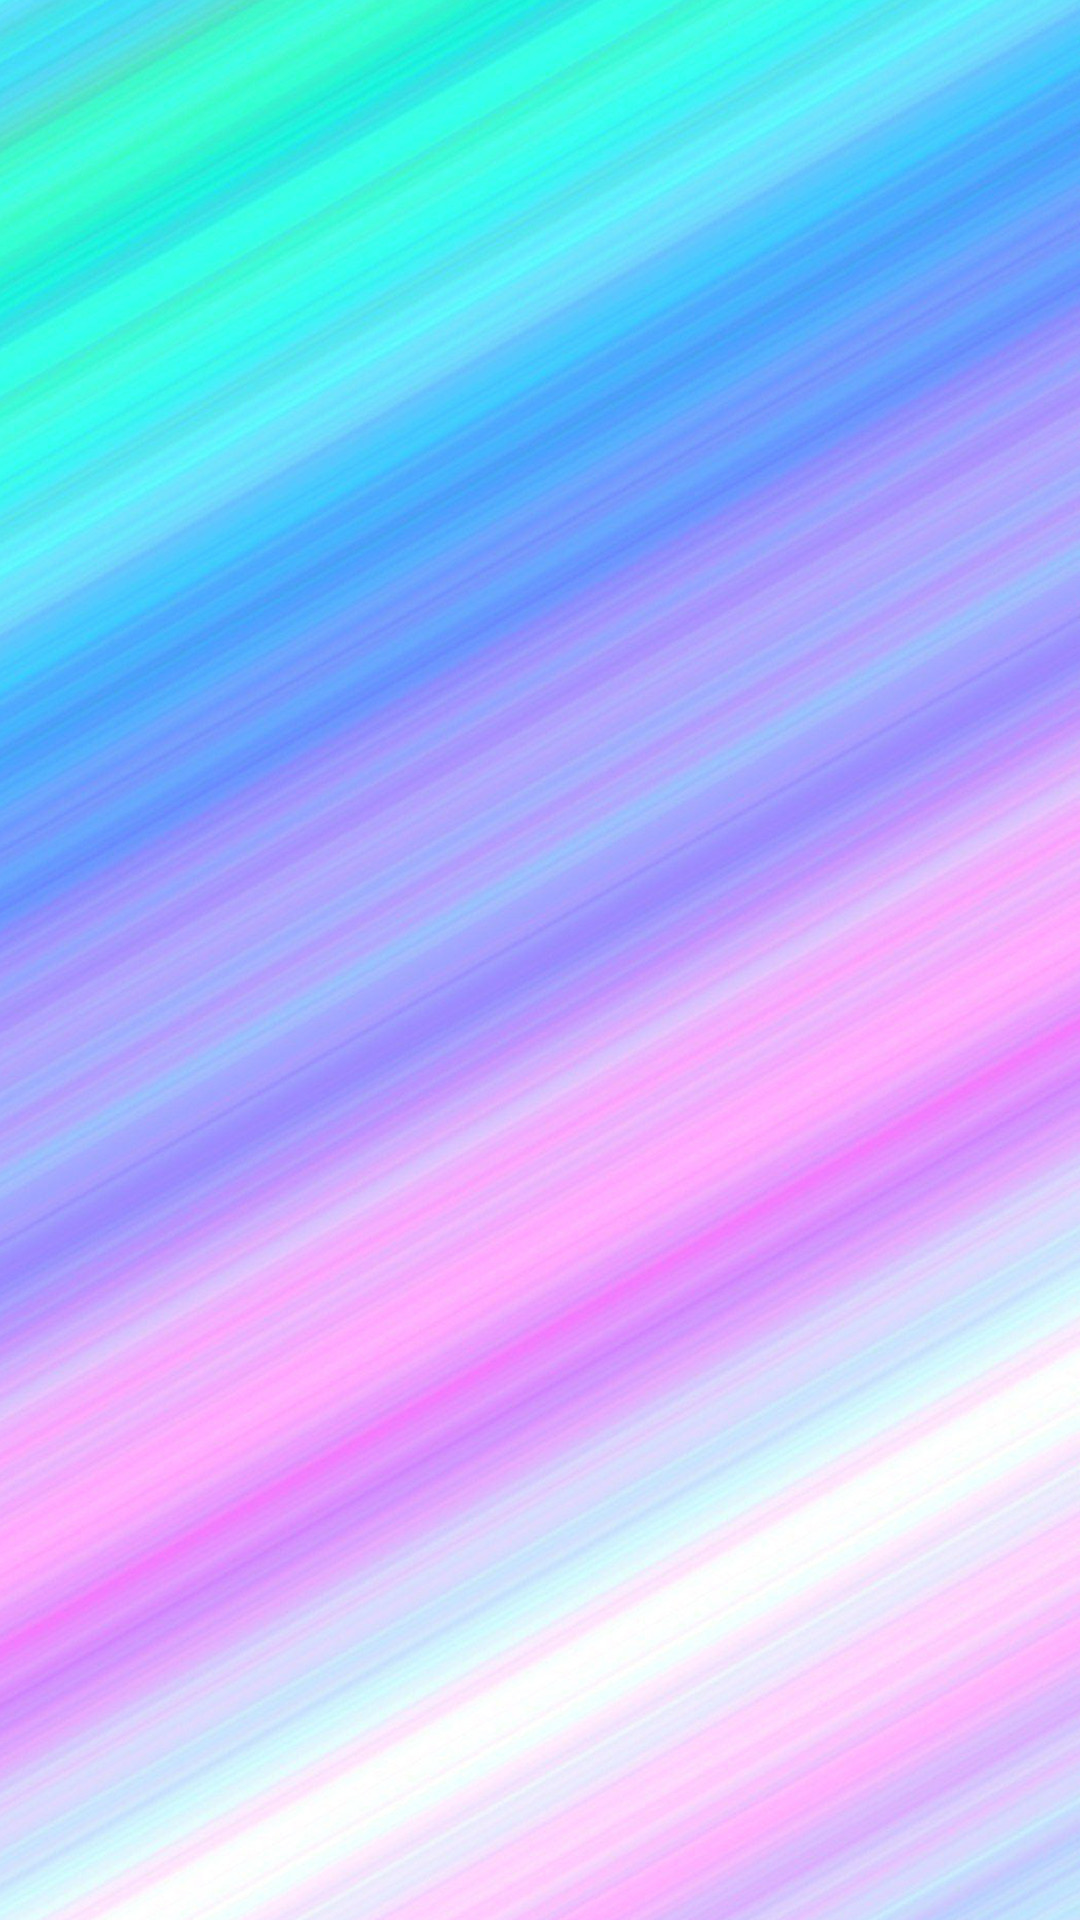 Blue and Pink Ombre Wallpaper (60+ images)